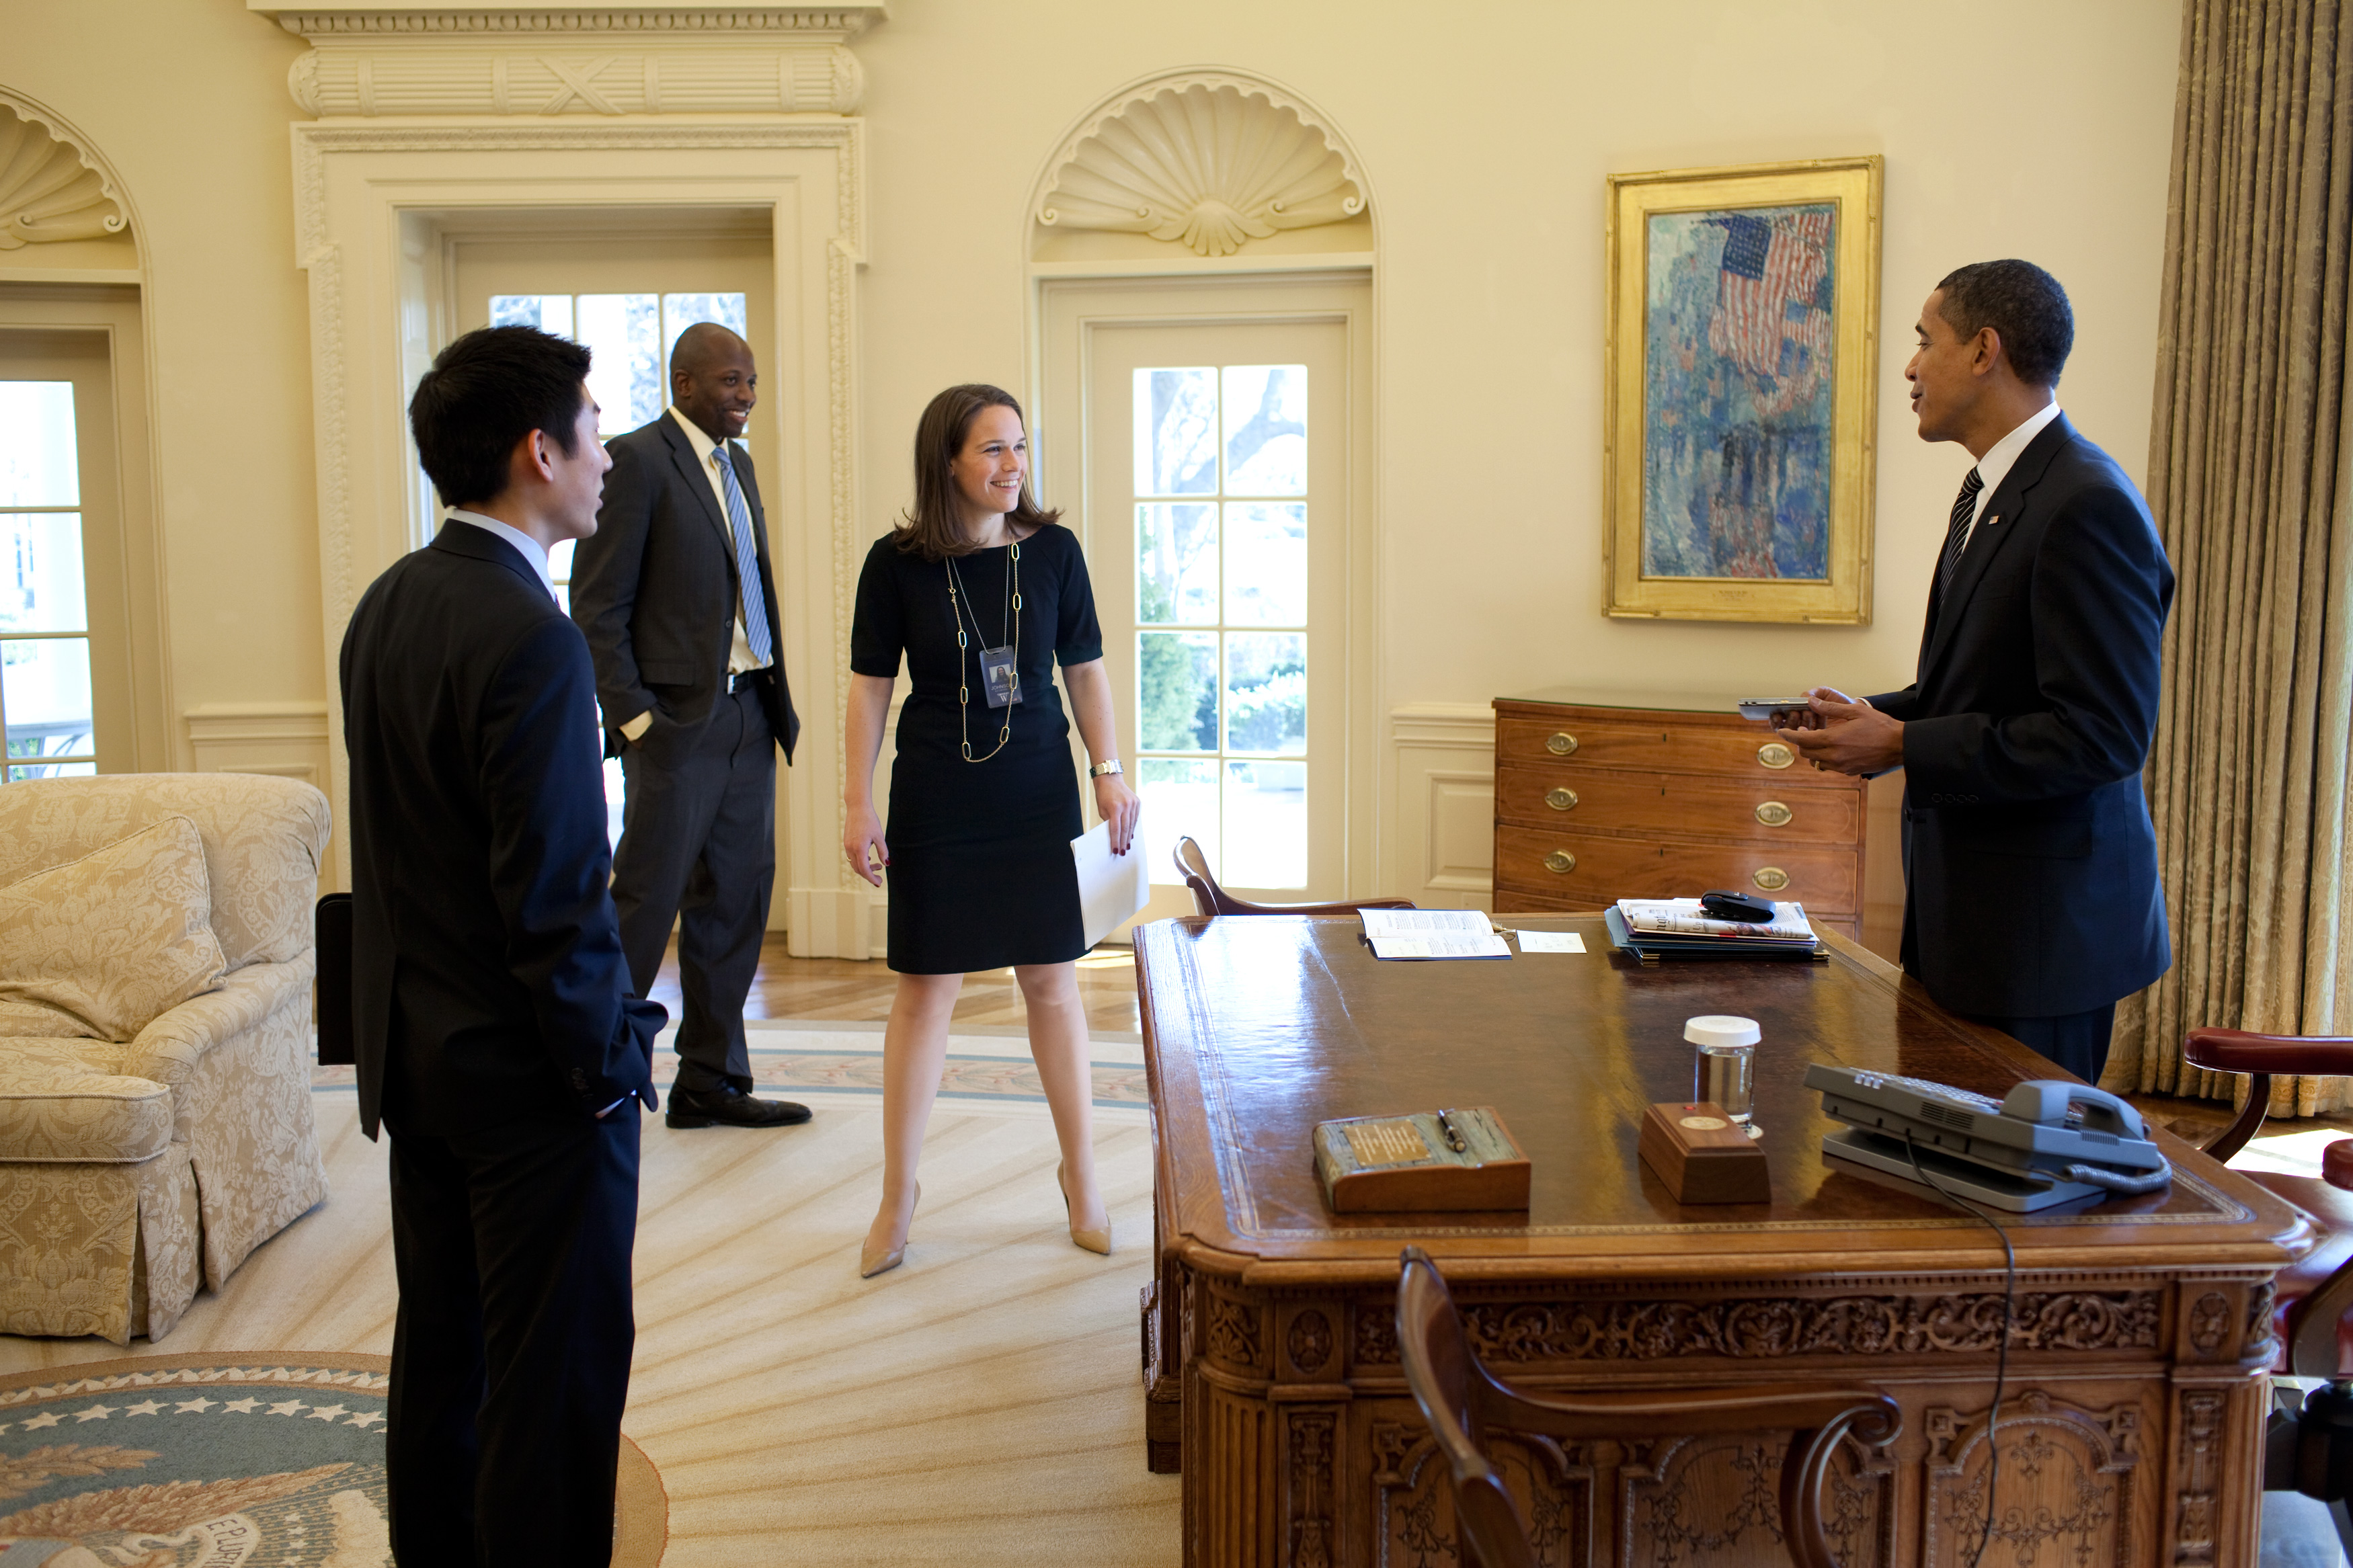 Obama Resolute Desk File Barack Obama Eugene Kang Katie Johnson And Reggie